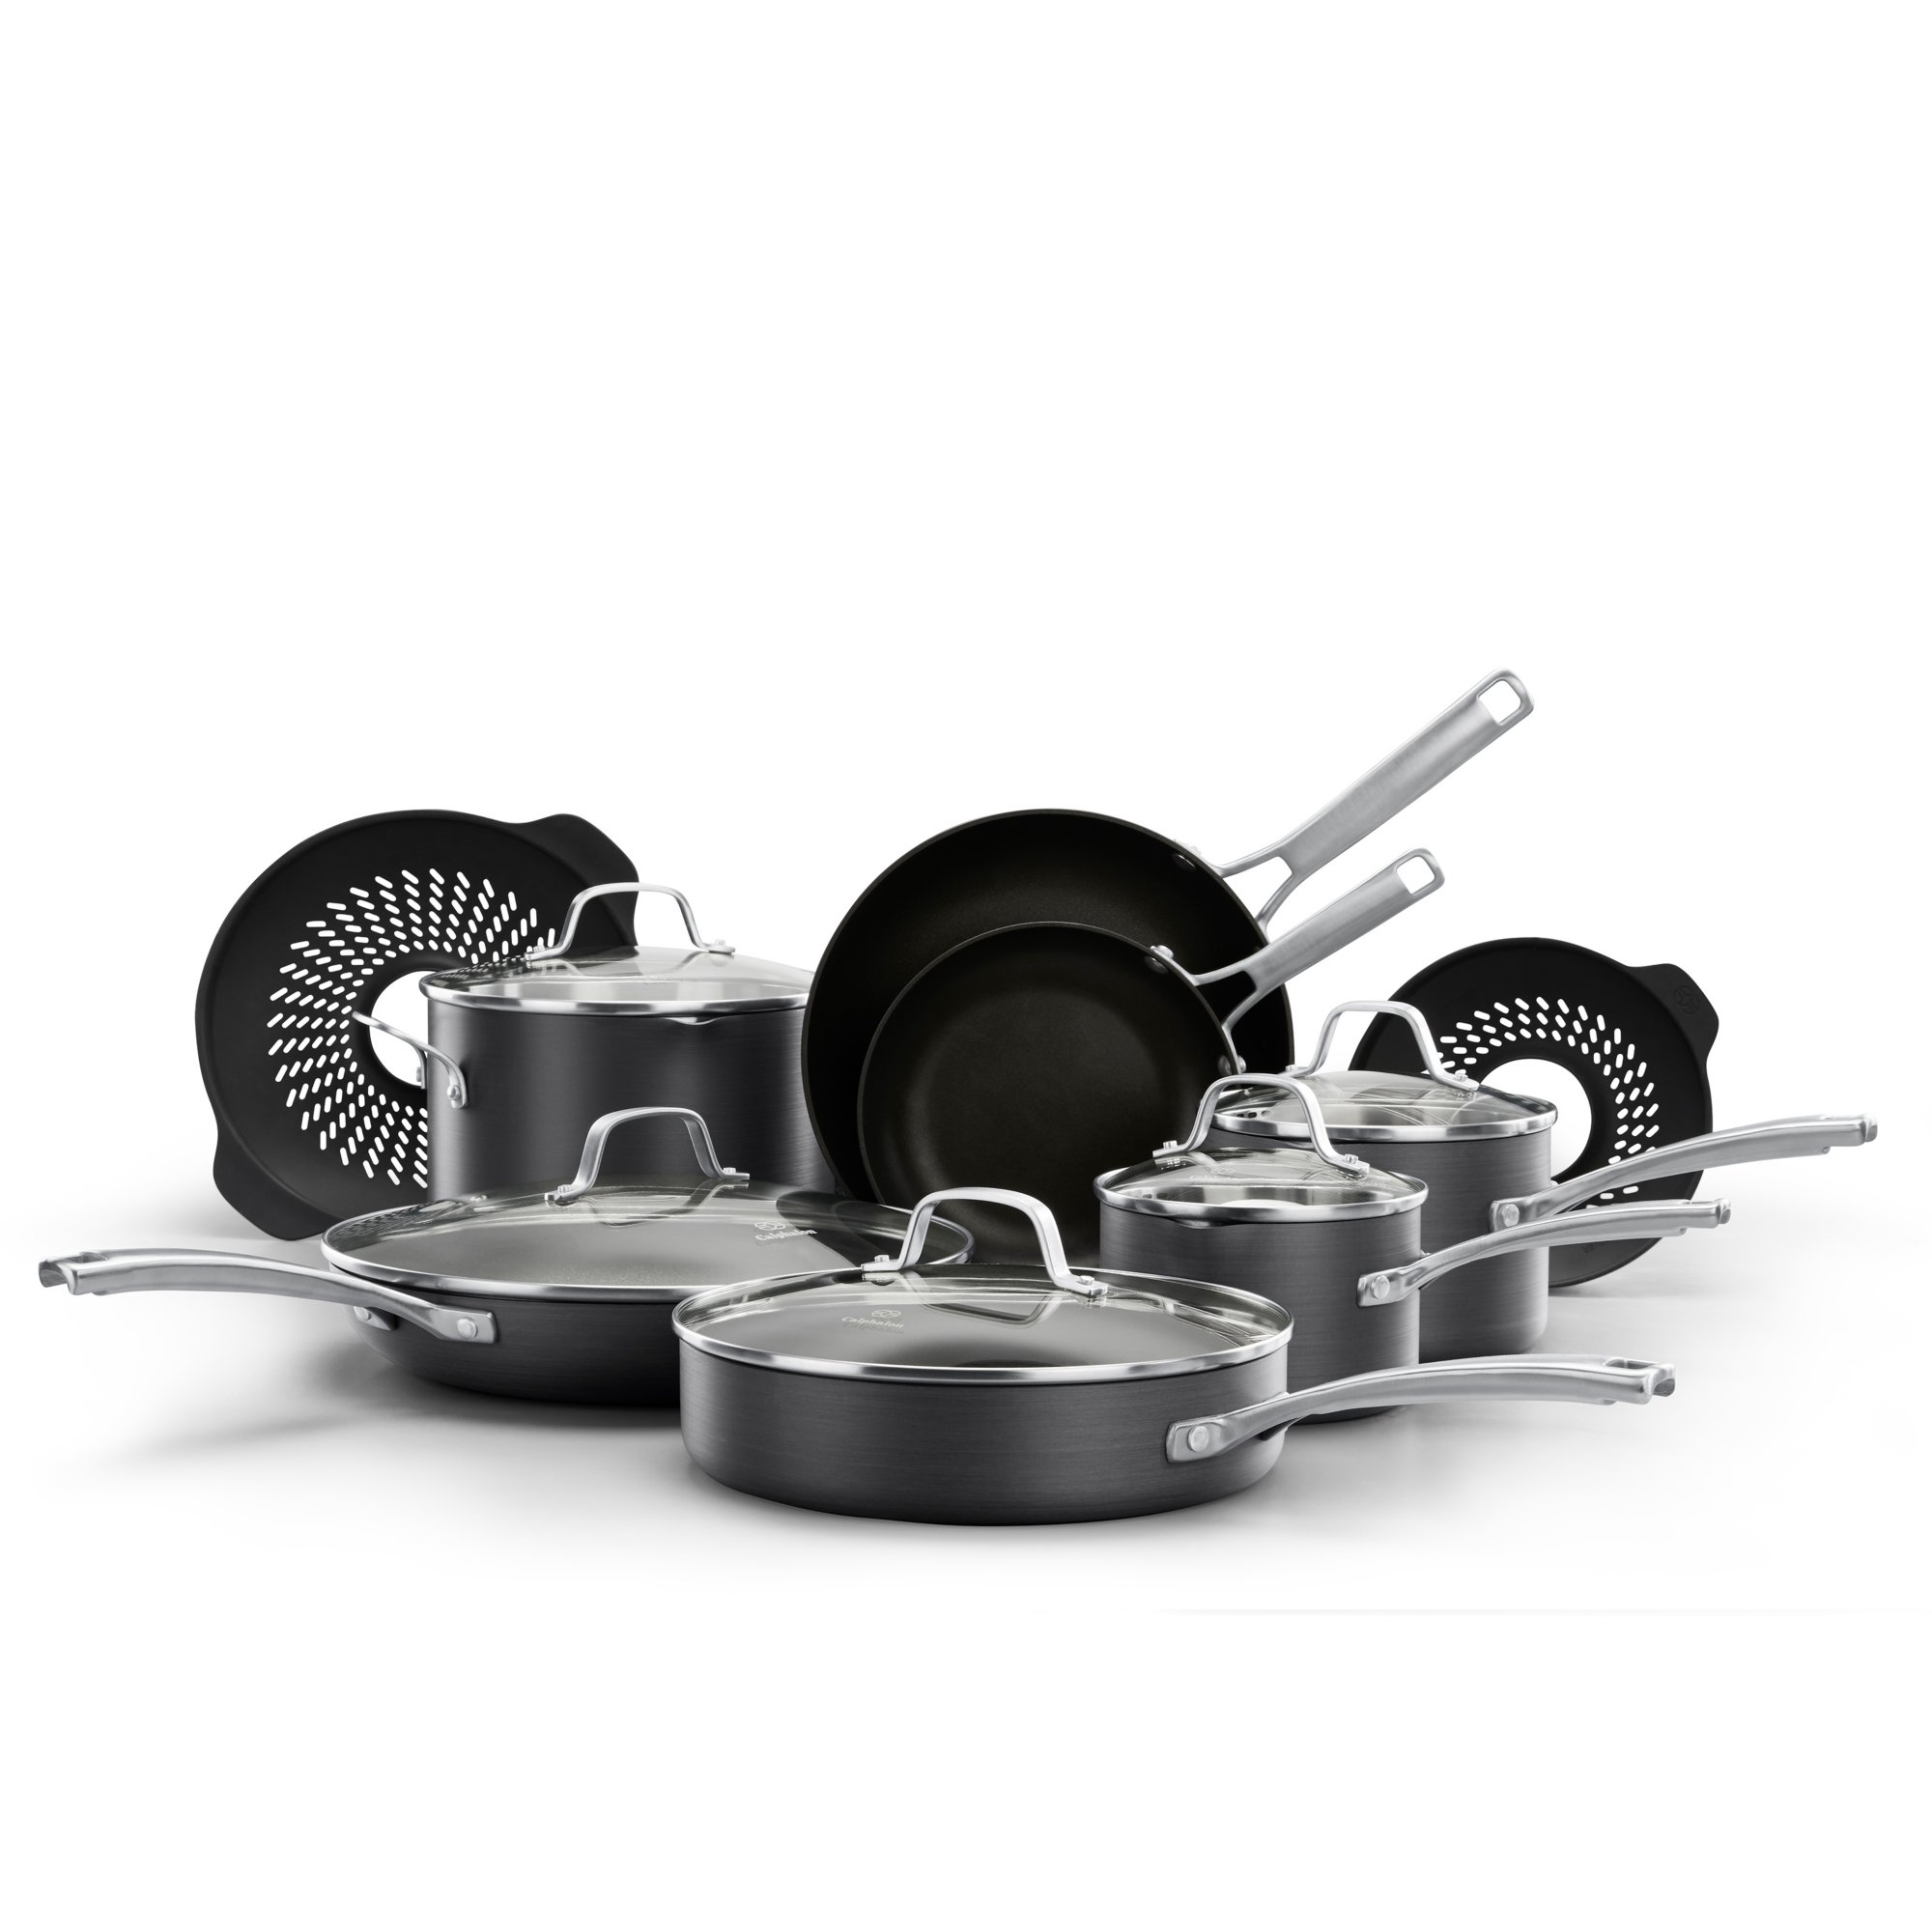 Calphalon Classic? Nonstick 14-Piece Cookware Set with No-Boil-Over Inserts